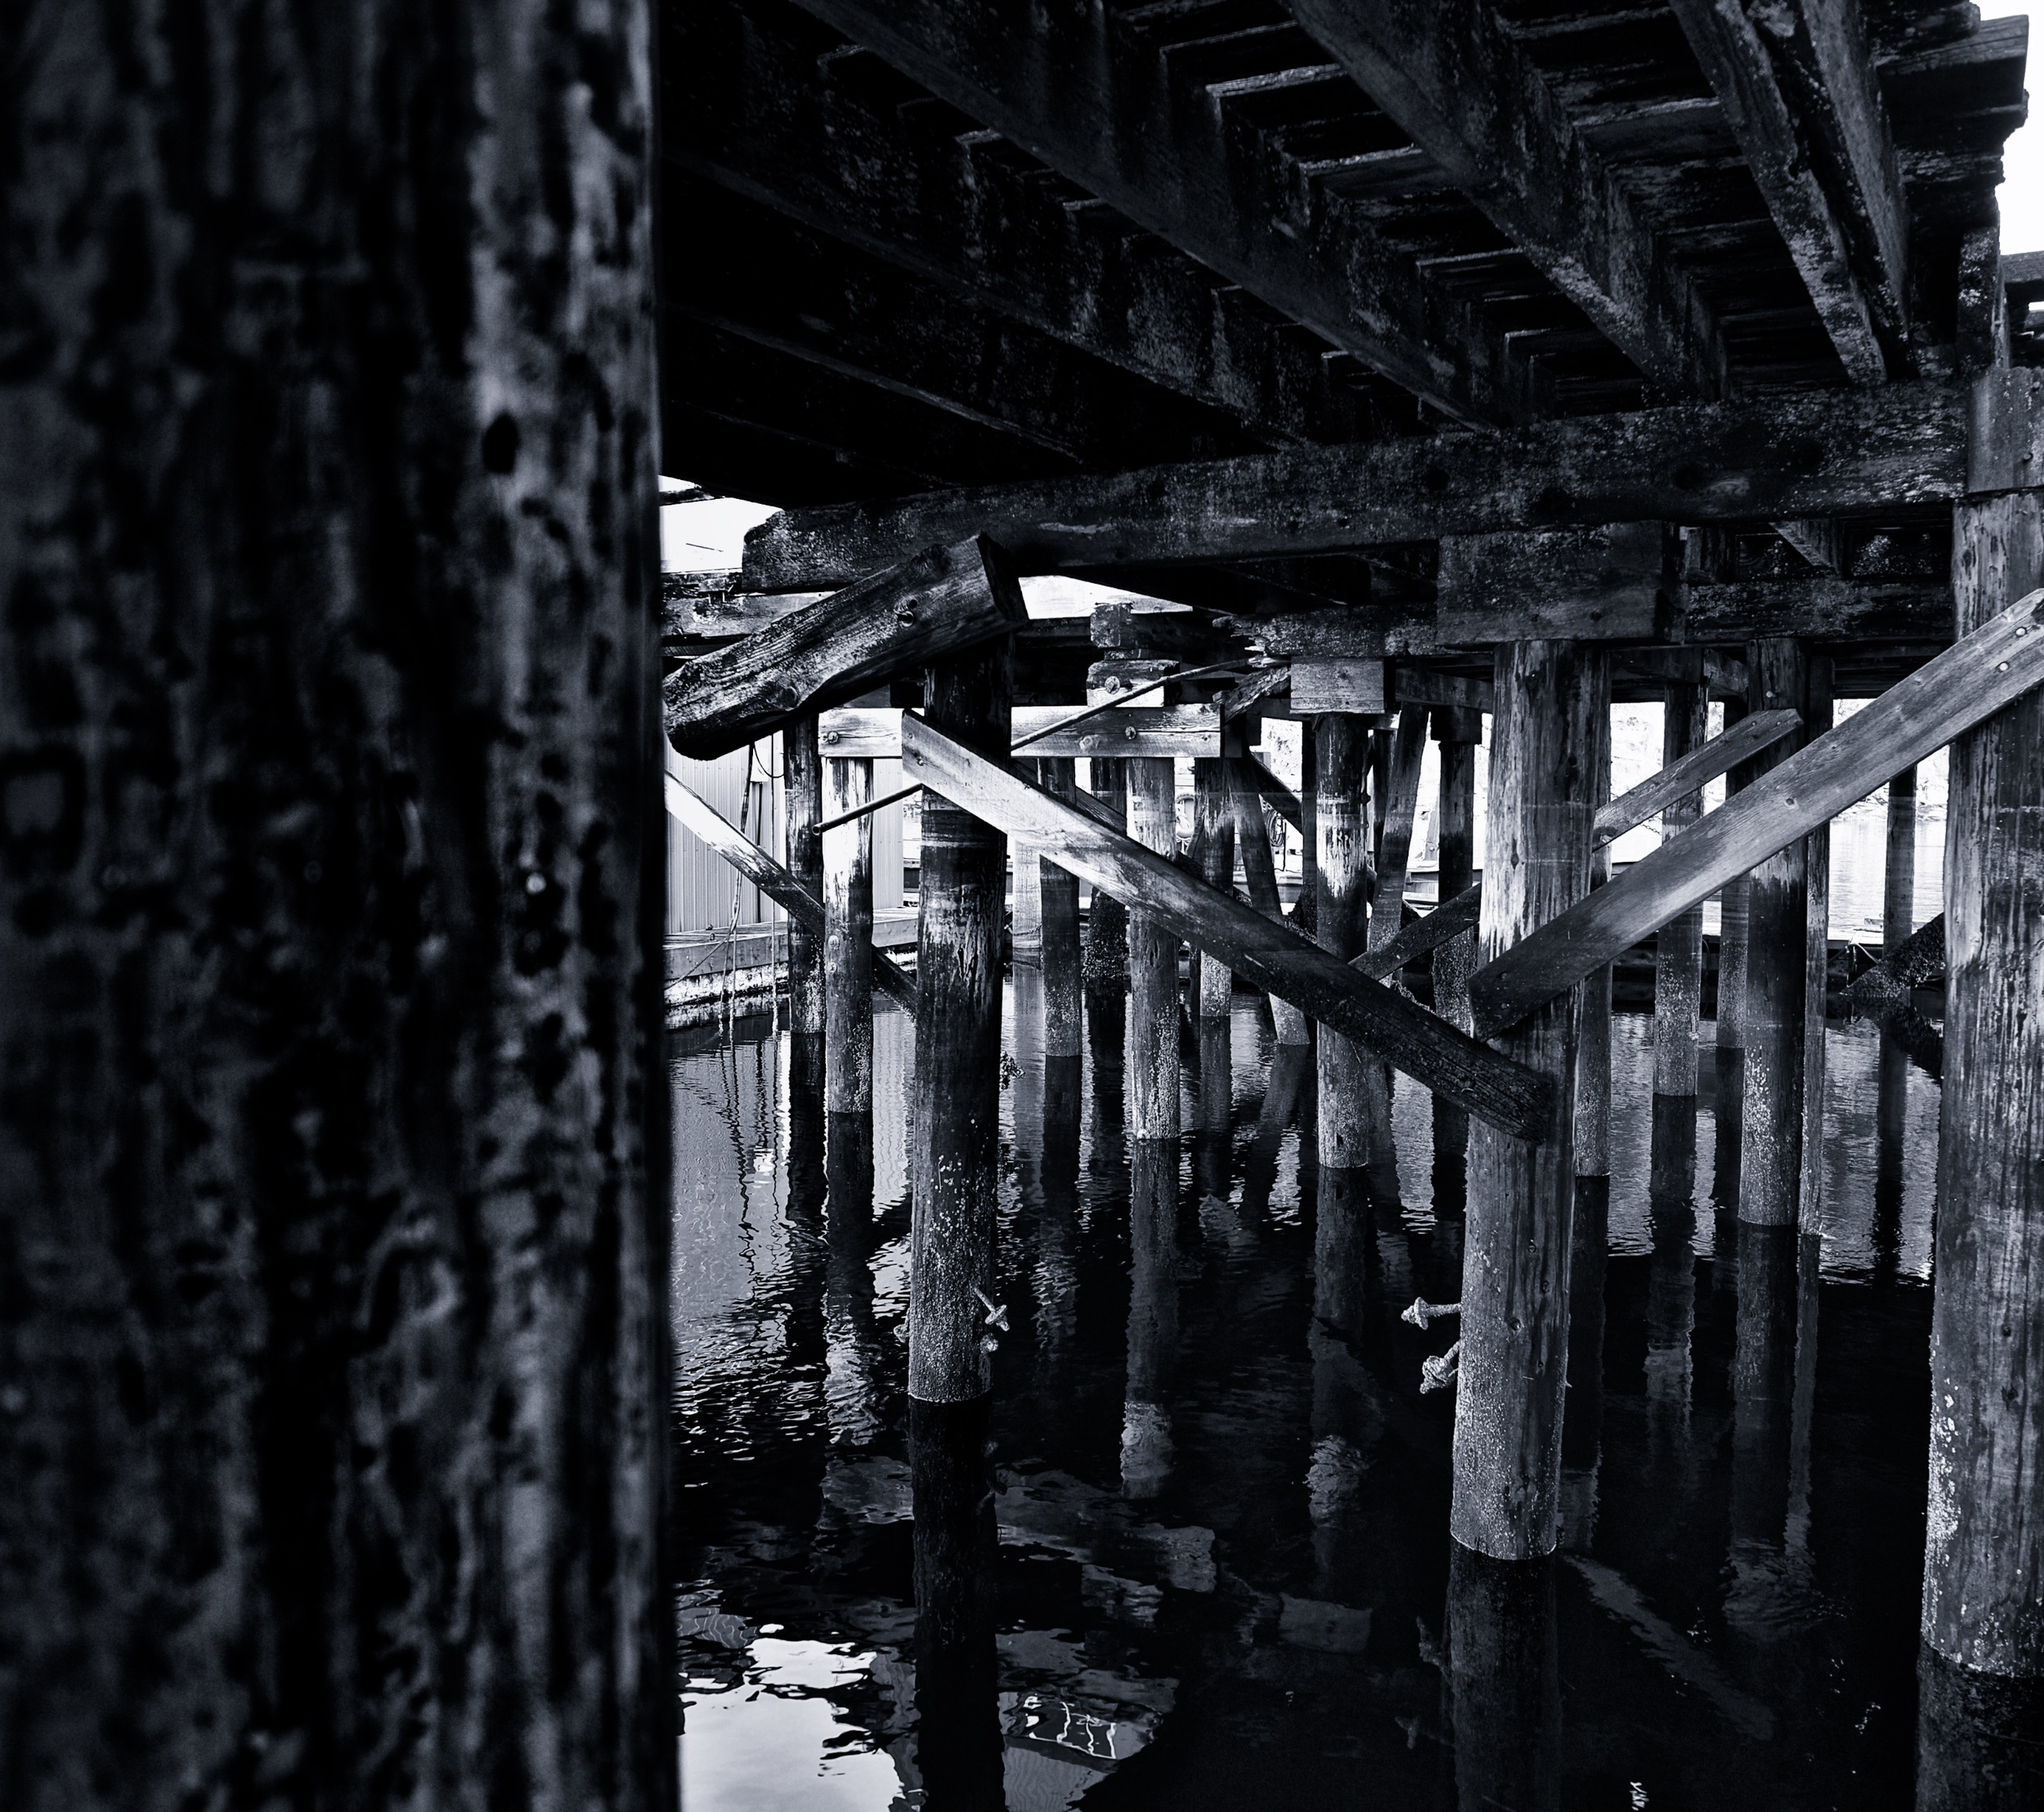 2014-12-25 at 15-32-46 Black & White, Dock, Marina, Ocean, Pier, Post, Urban, Water, Wood.jpg